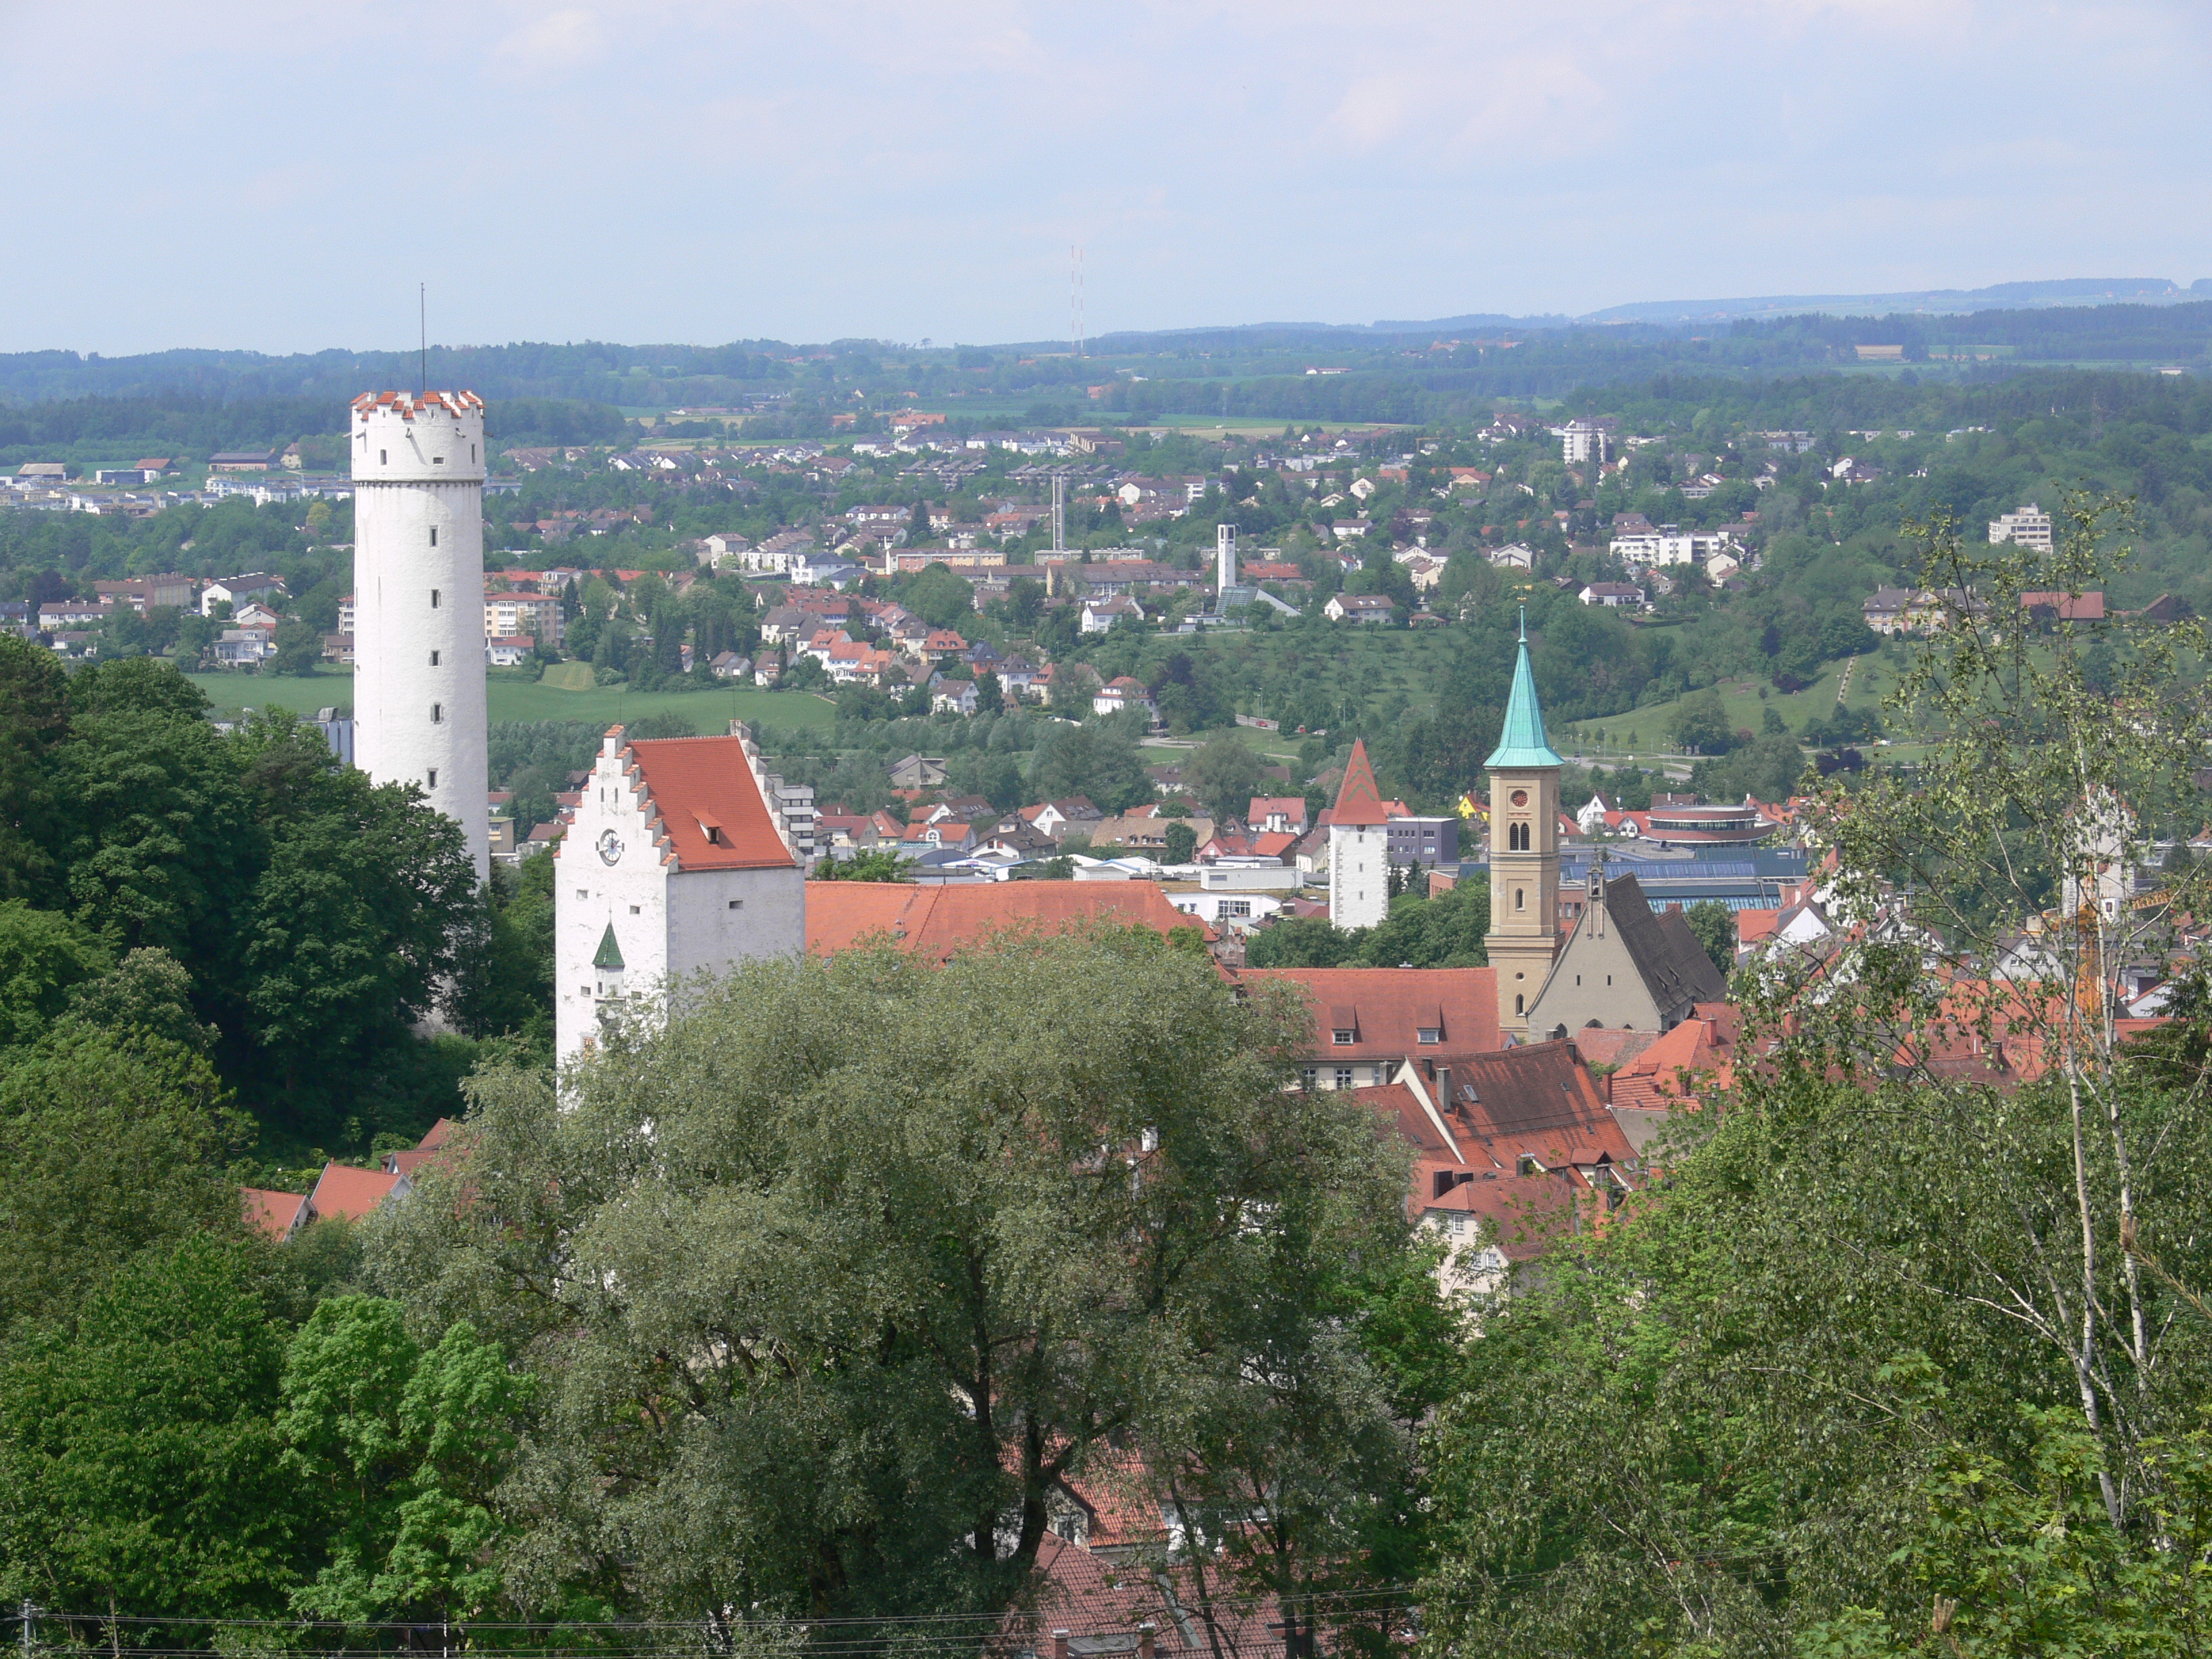 regensburg mature dating site - rent from people in regensburg hbf, regensburg, germany from  $20/night find unique places to stay with local hosts in 191 countries belong.